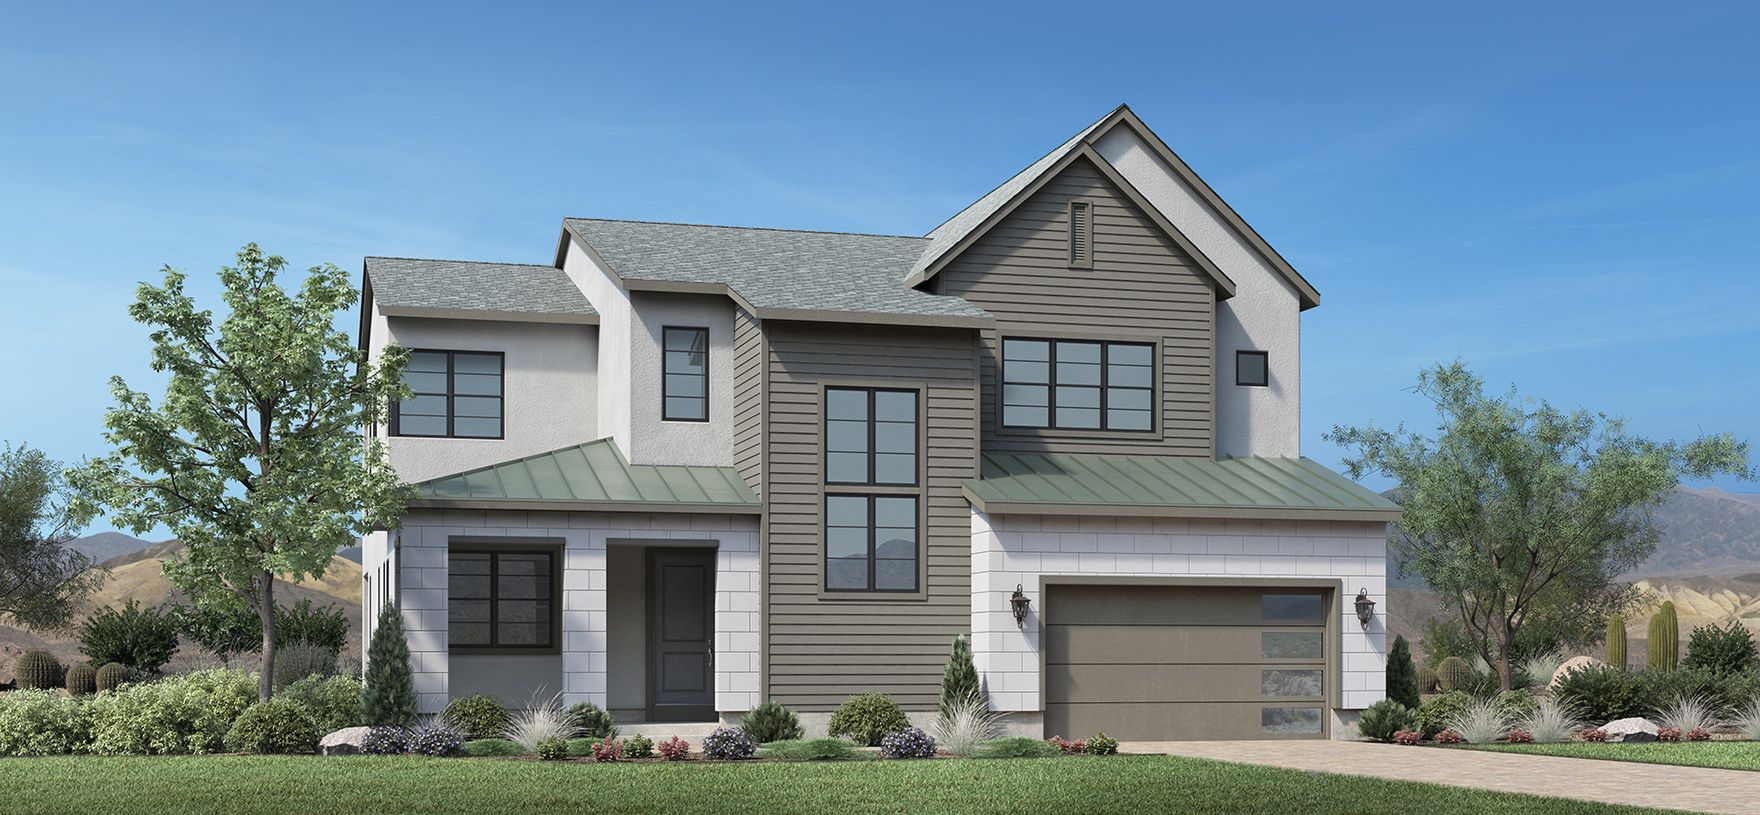 Exterior featured in the Durham By Toll Brothers in Reno, NV